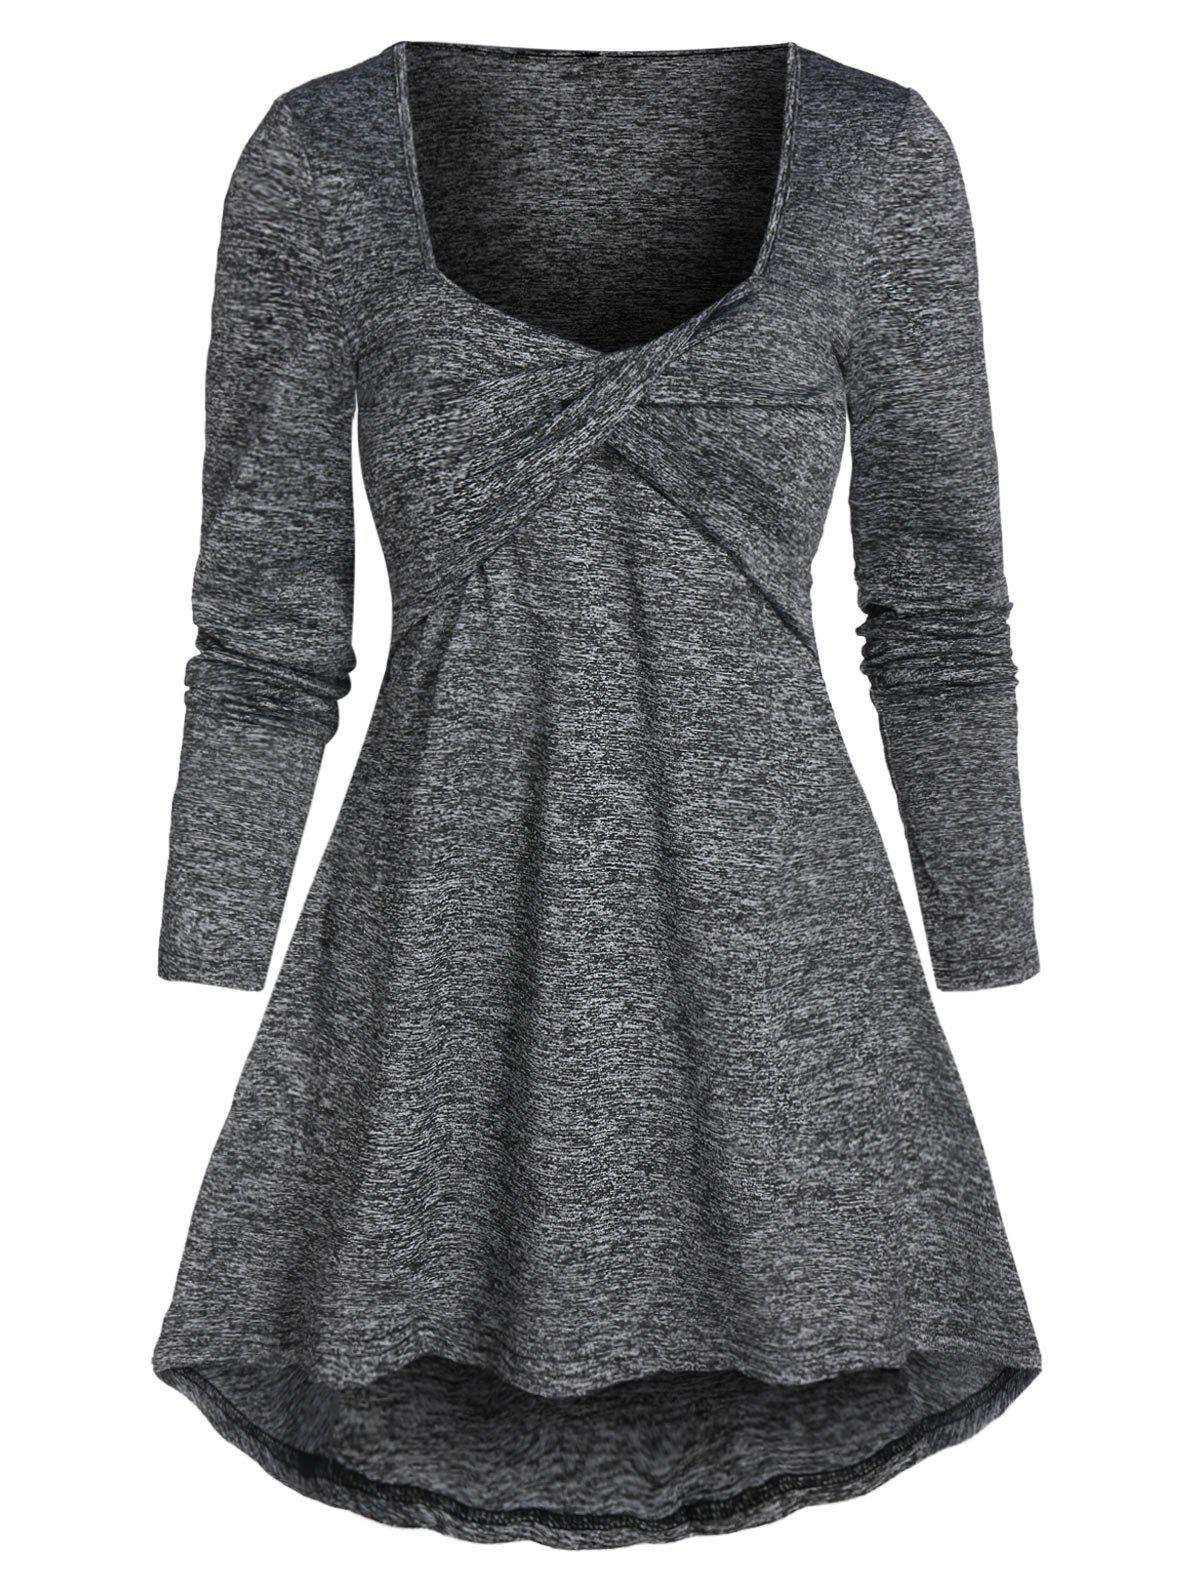 Twist Front High Low T-shirt - ASH GRAY 2XL